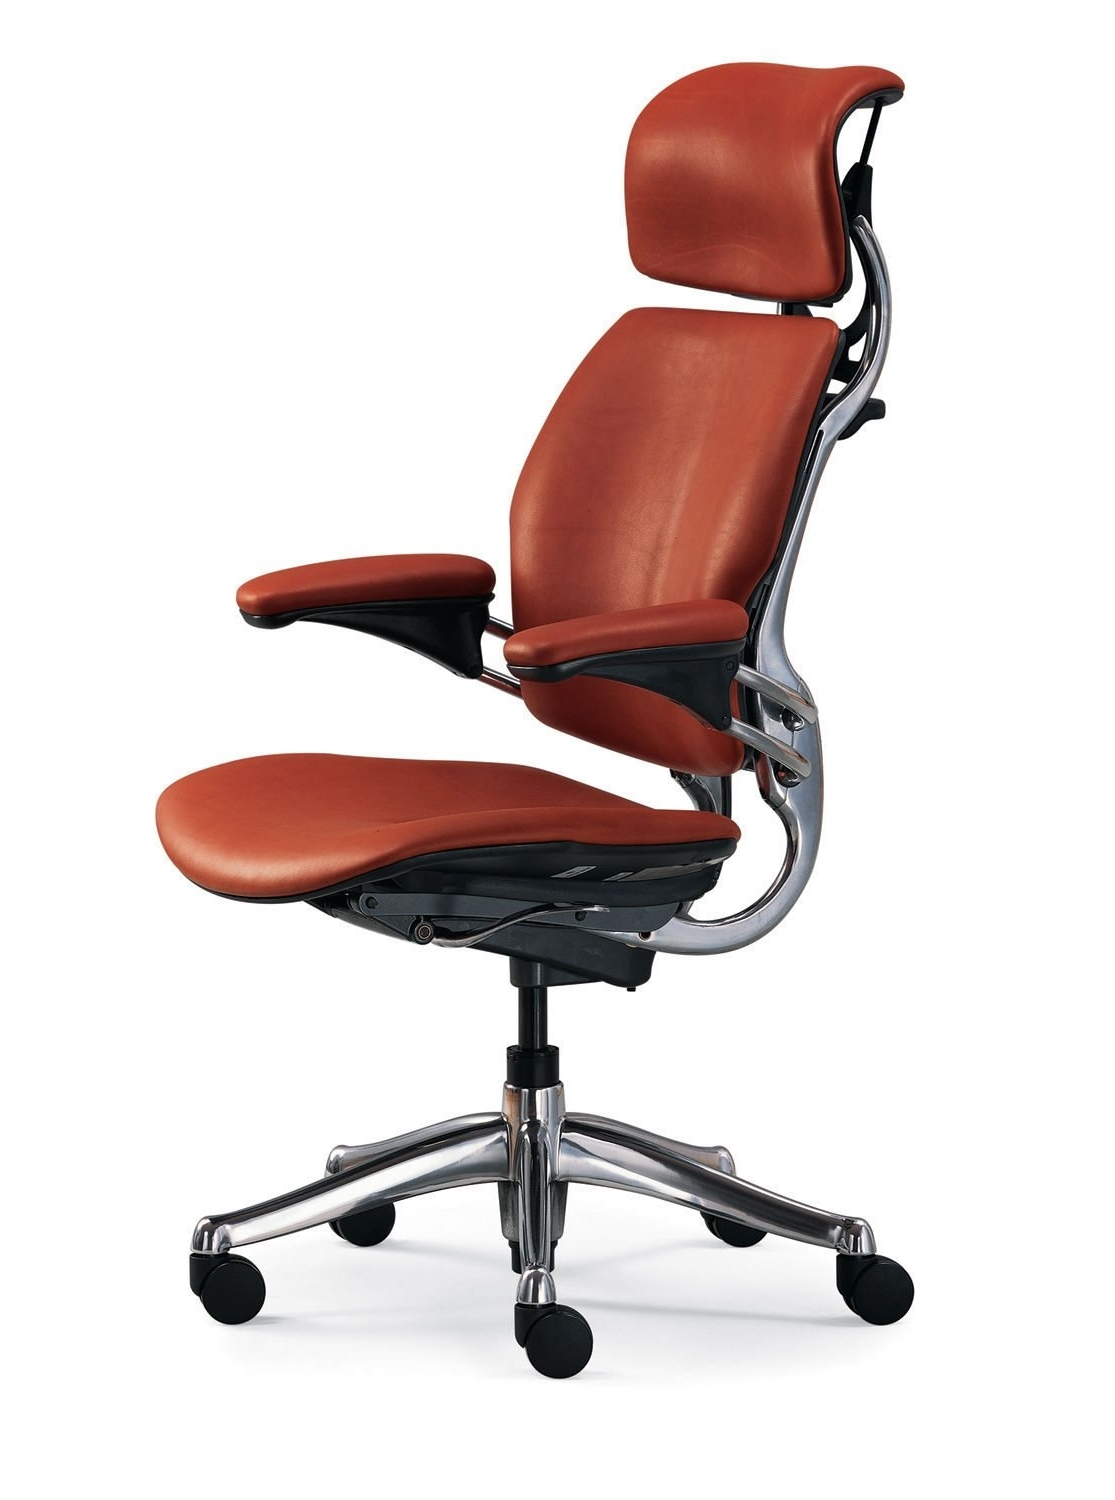 Fashionable Best Office Chair With Headrest • Office Chairs Intended For Executive Office Chairs With Headrest (View 8 of 20)